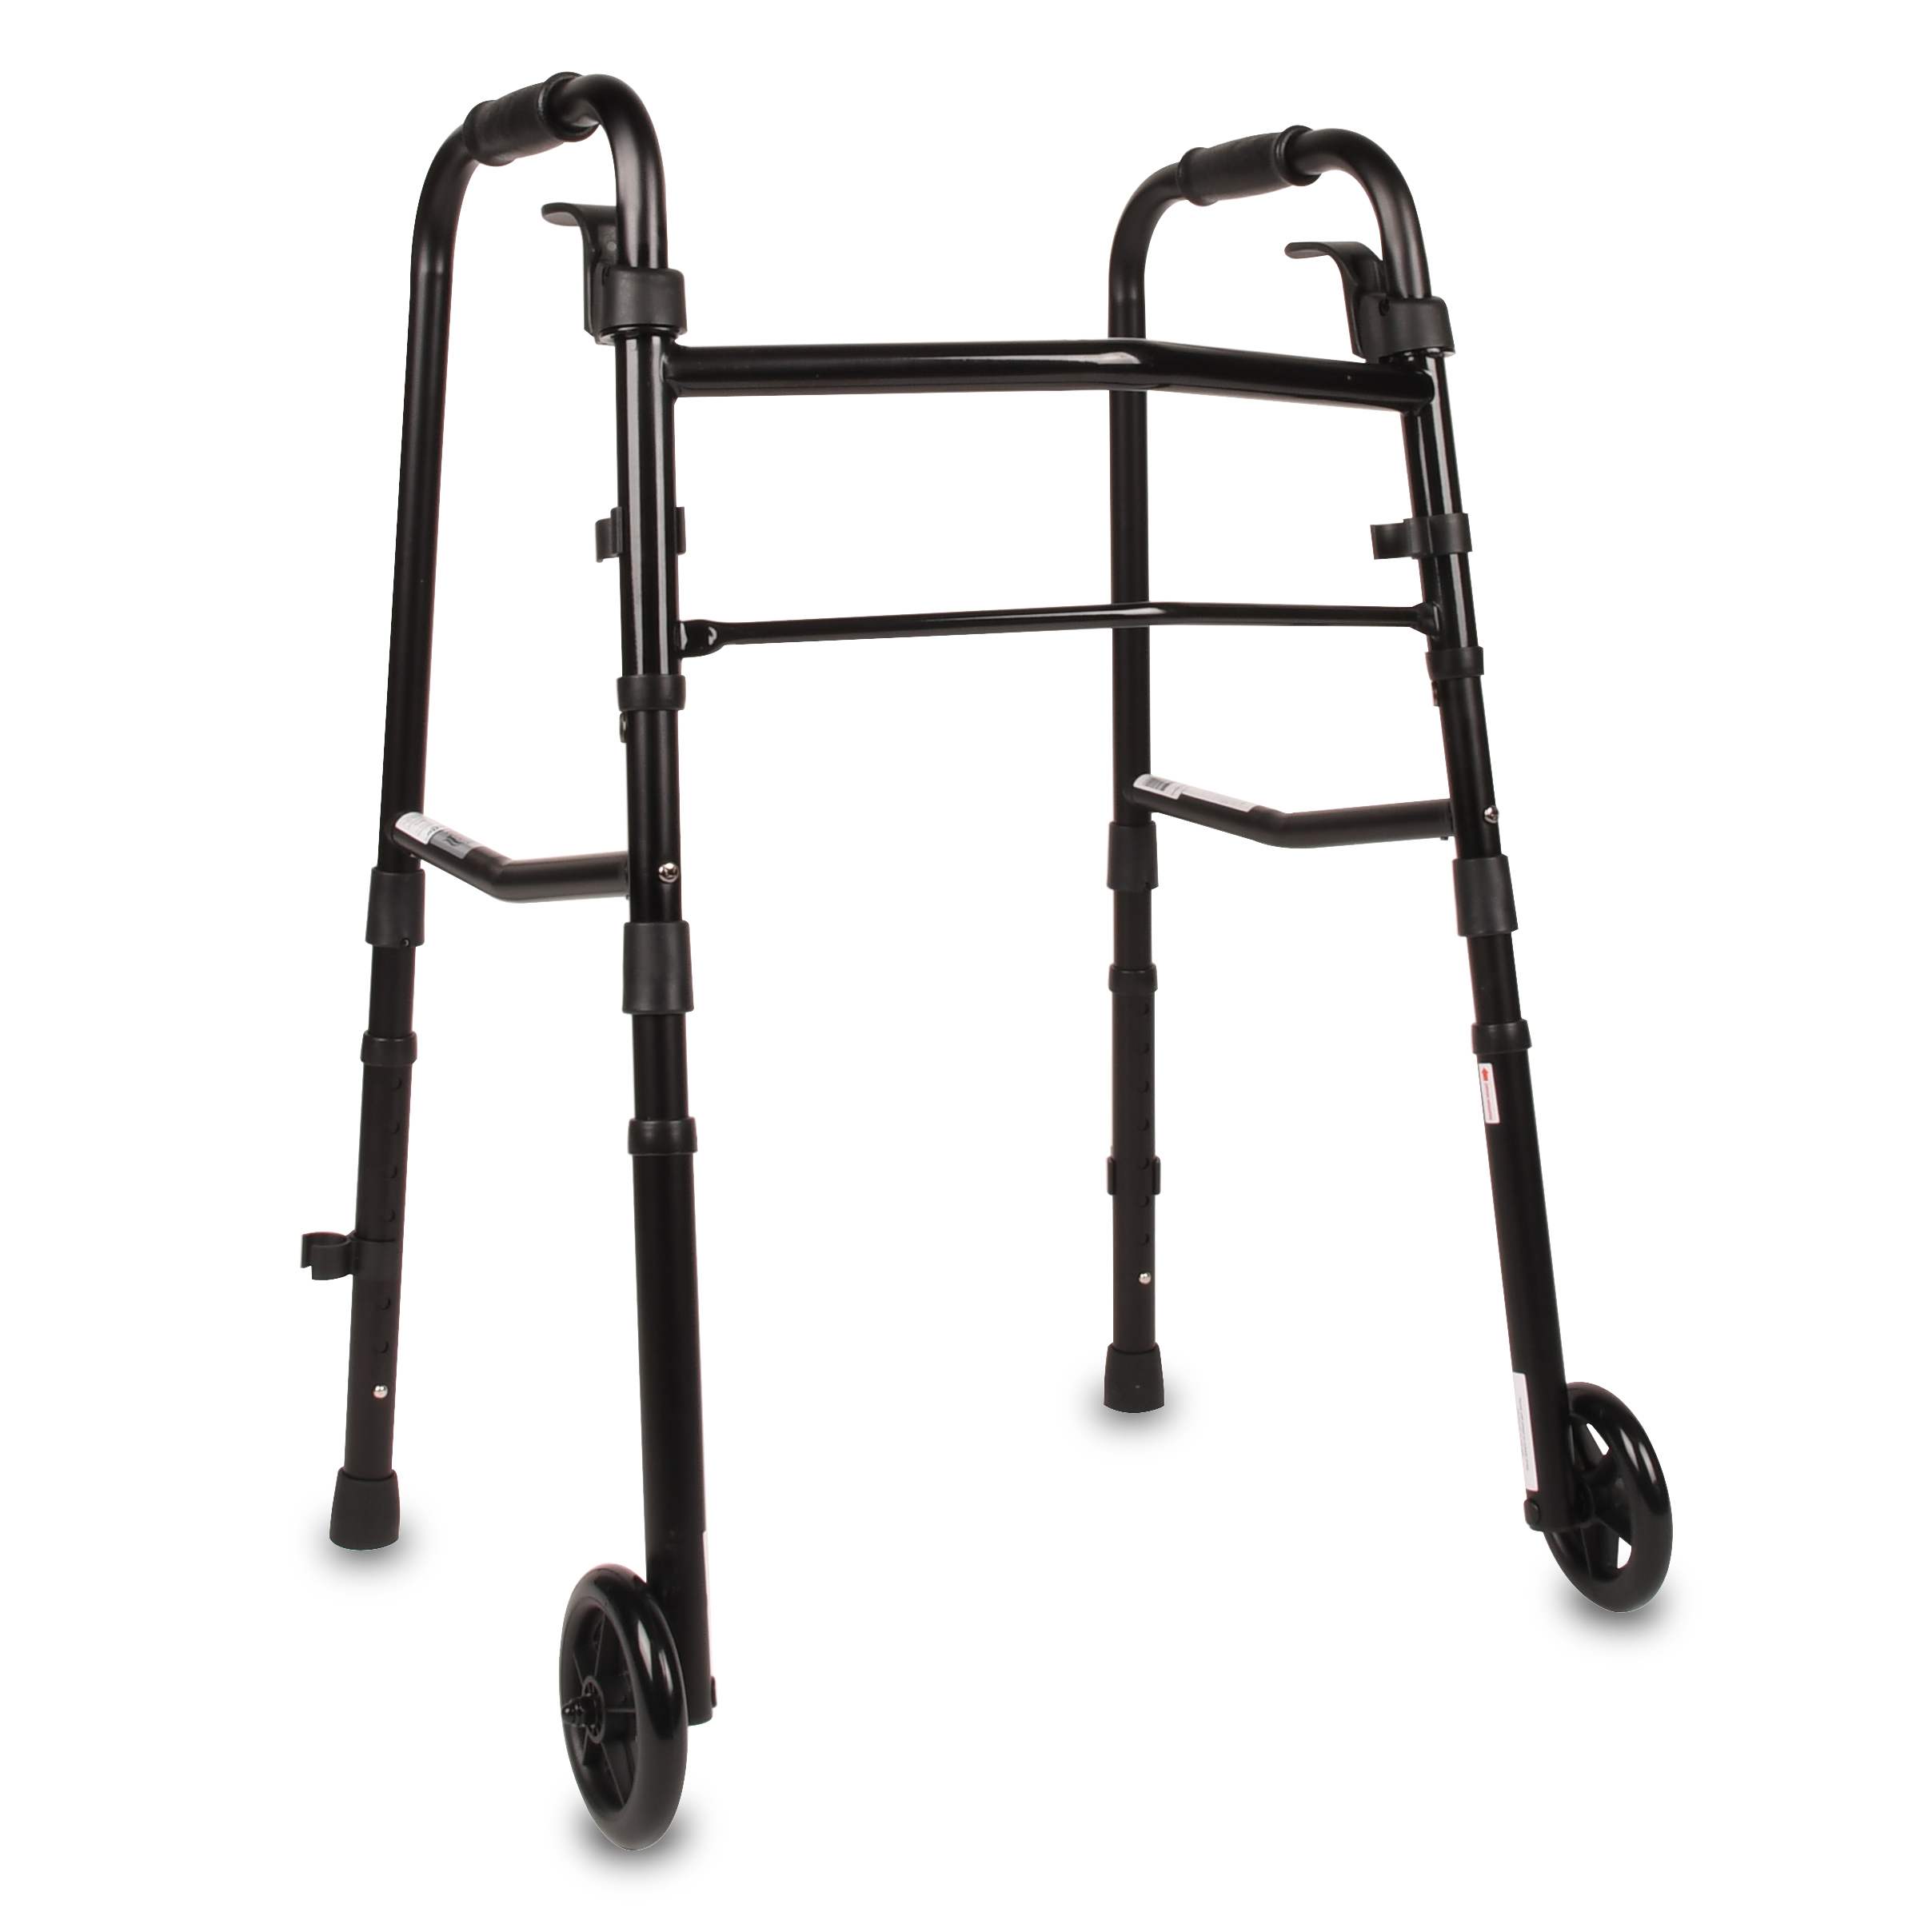 Equate Folding Walker with Wheels, Black